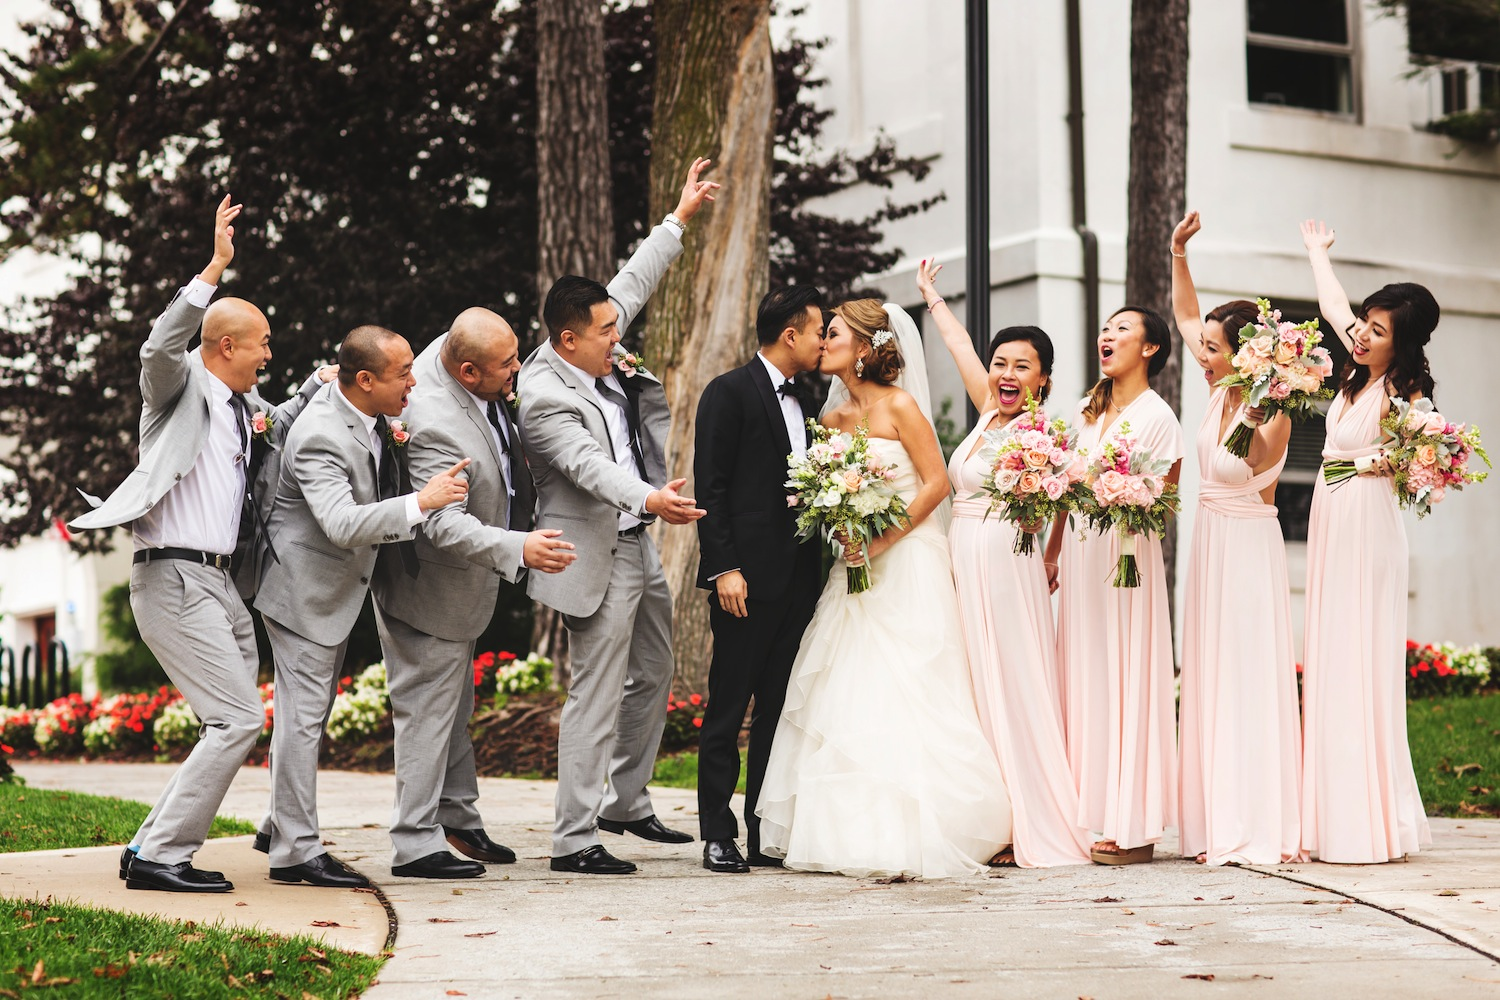 evan-and-gracie-kissing-outside-surrounded-by-cheering-wedding-party-nj-photography